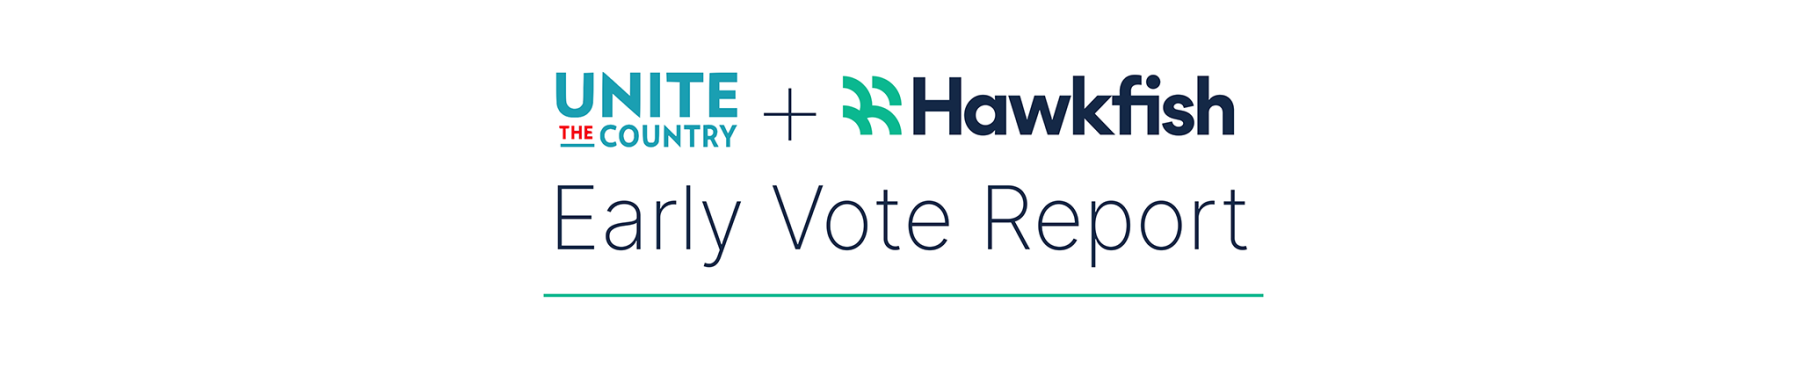 Unite the Country + Hawkfish present the Early Vote Report